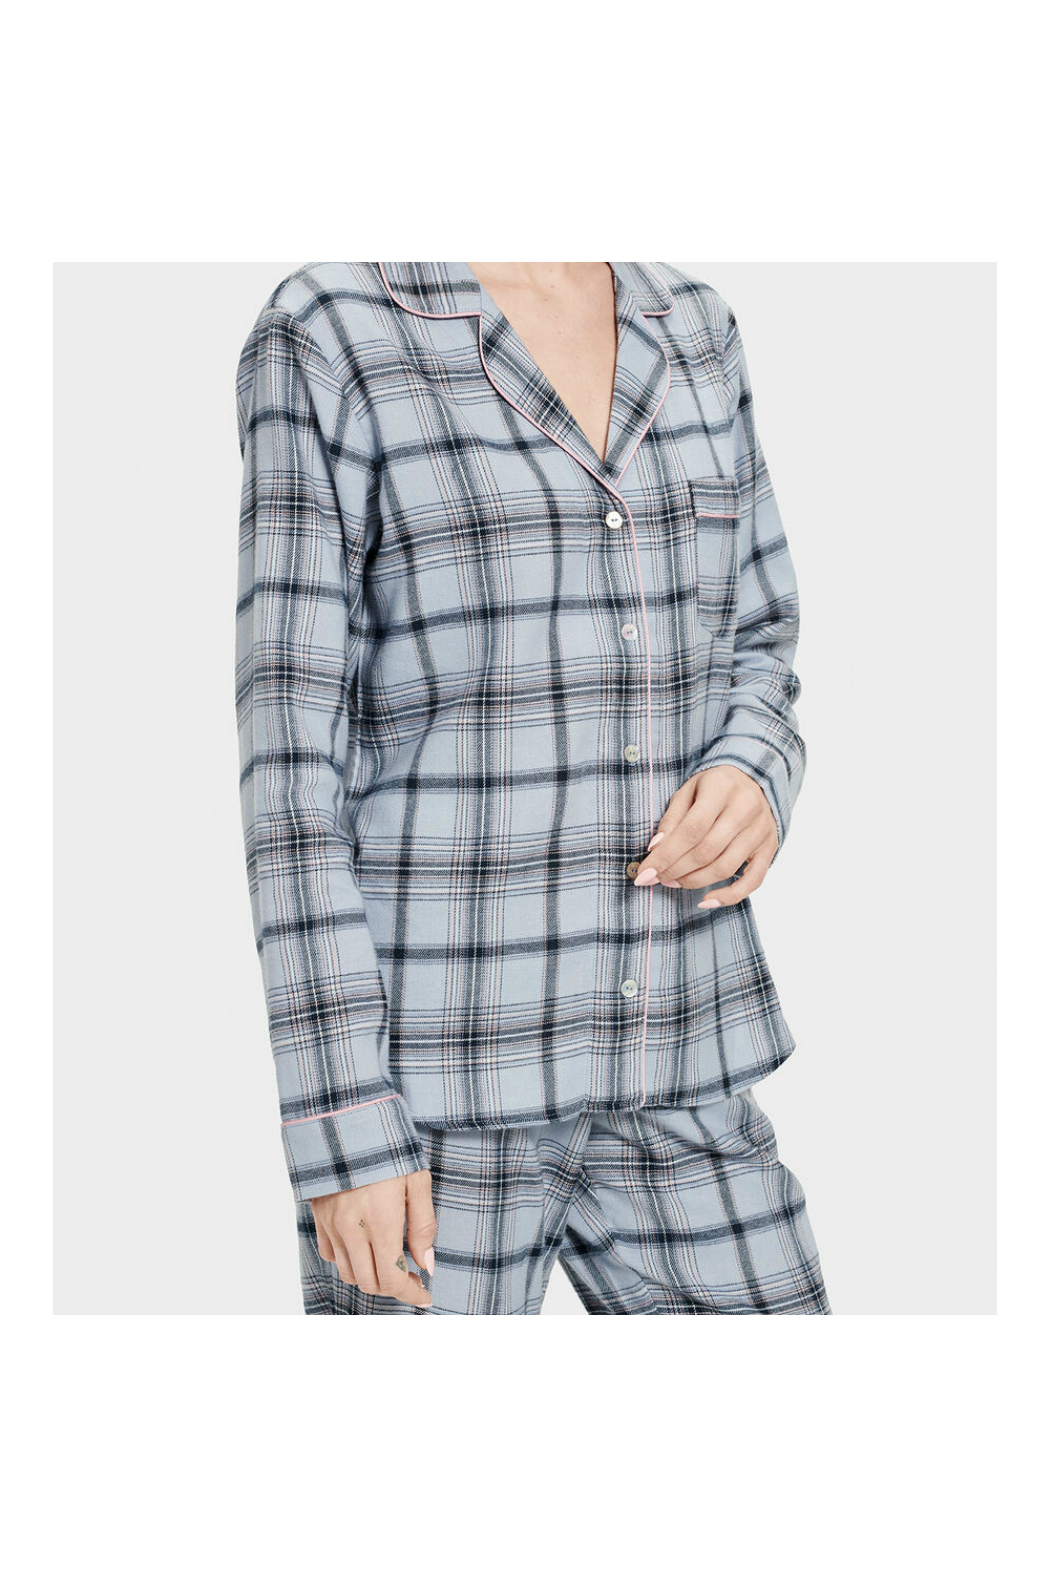 Ugg RAVEN FLANNEL PJ SET - Side Cropped Image